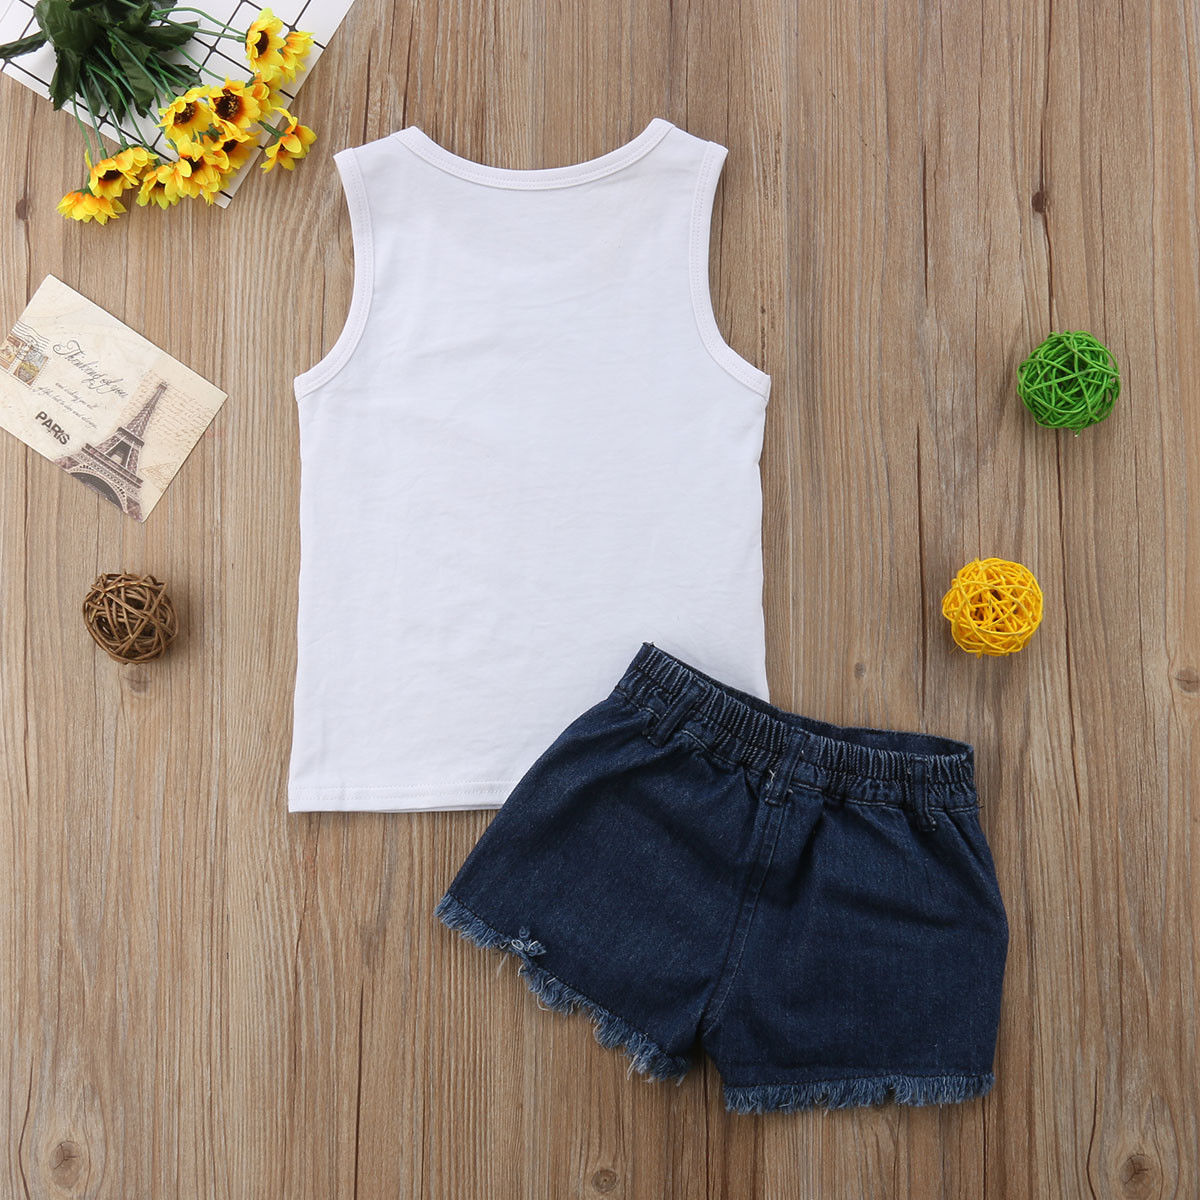 2020 Children Kids Baby Girl Clothes Set Summer Sleeveless Watermelon Vest Tops Shorts Ripped Jeans Girls Clothing Outfits 3